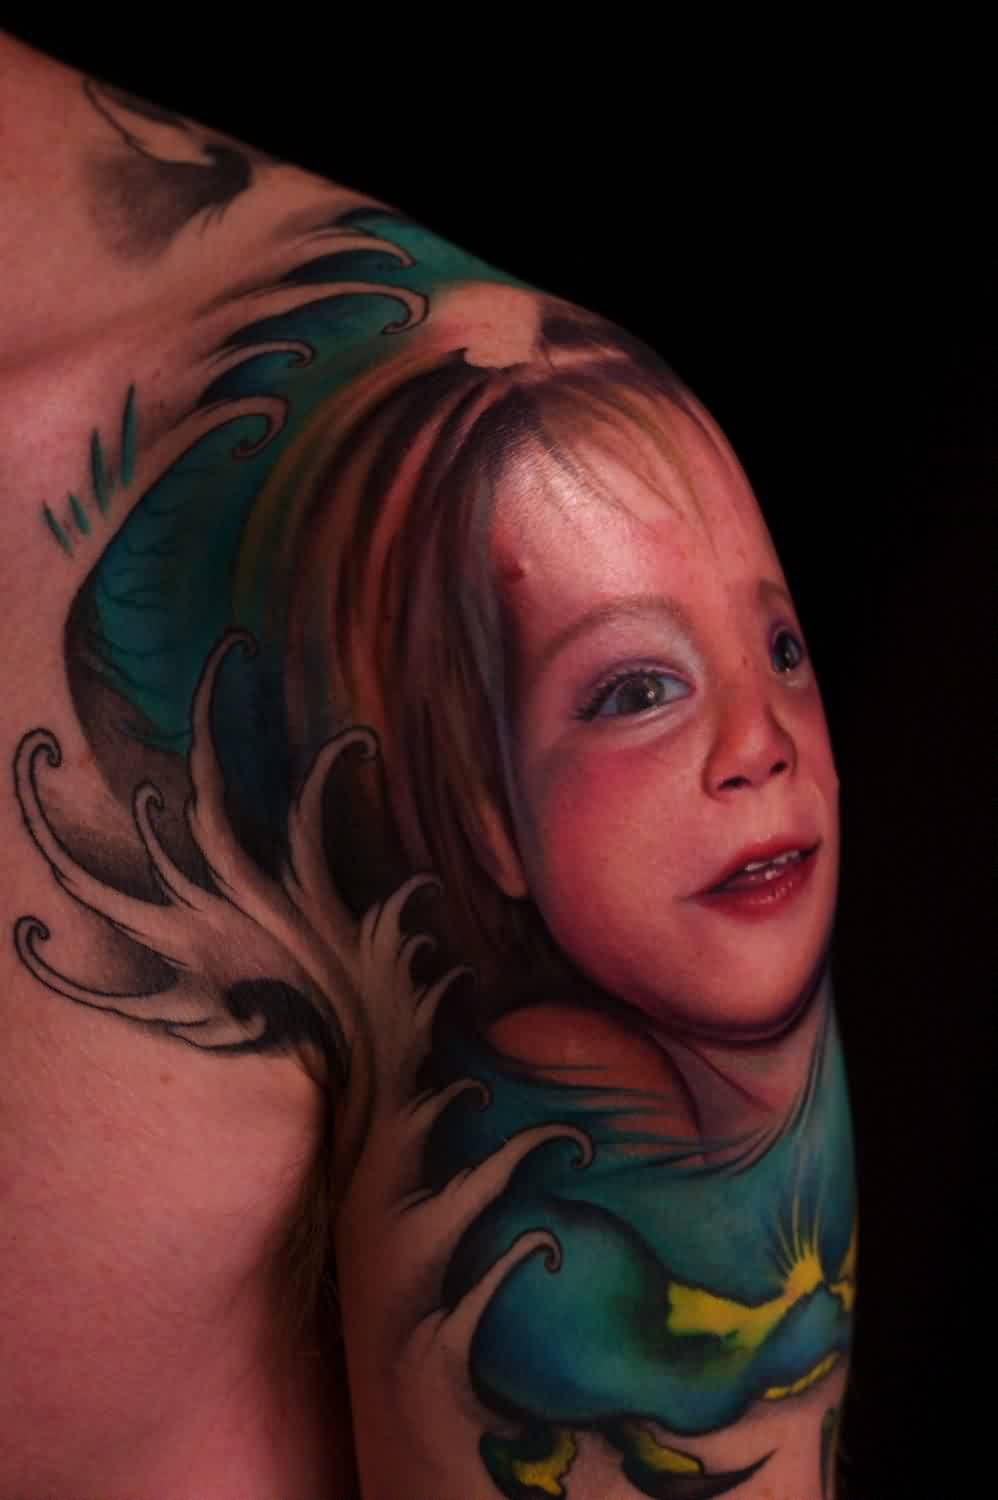 Pretty Girl Portrait Tattoo On Shoulder